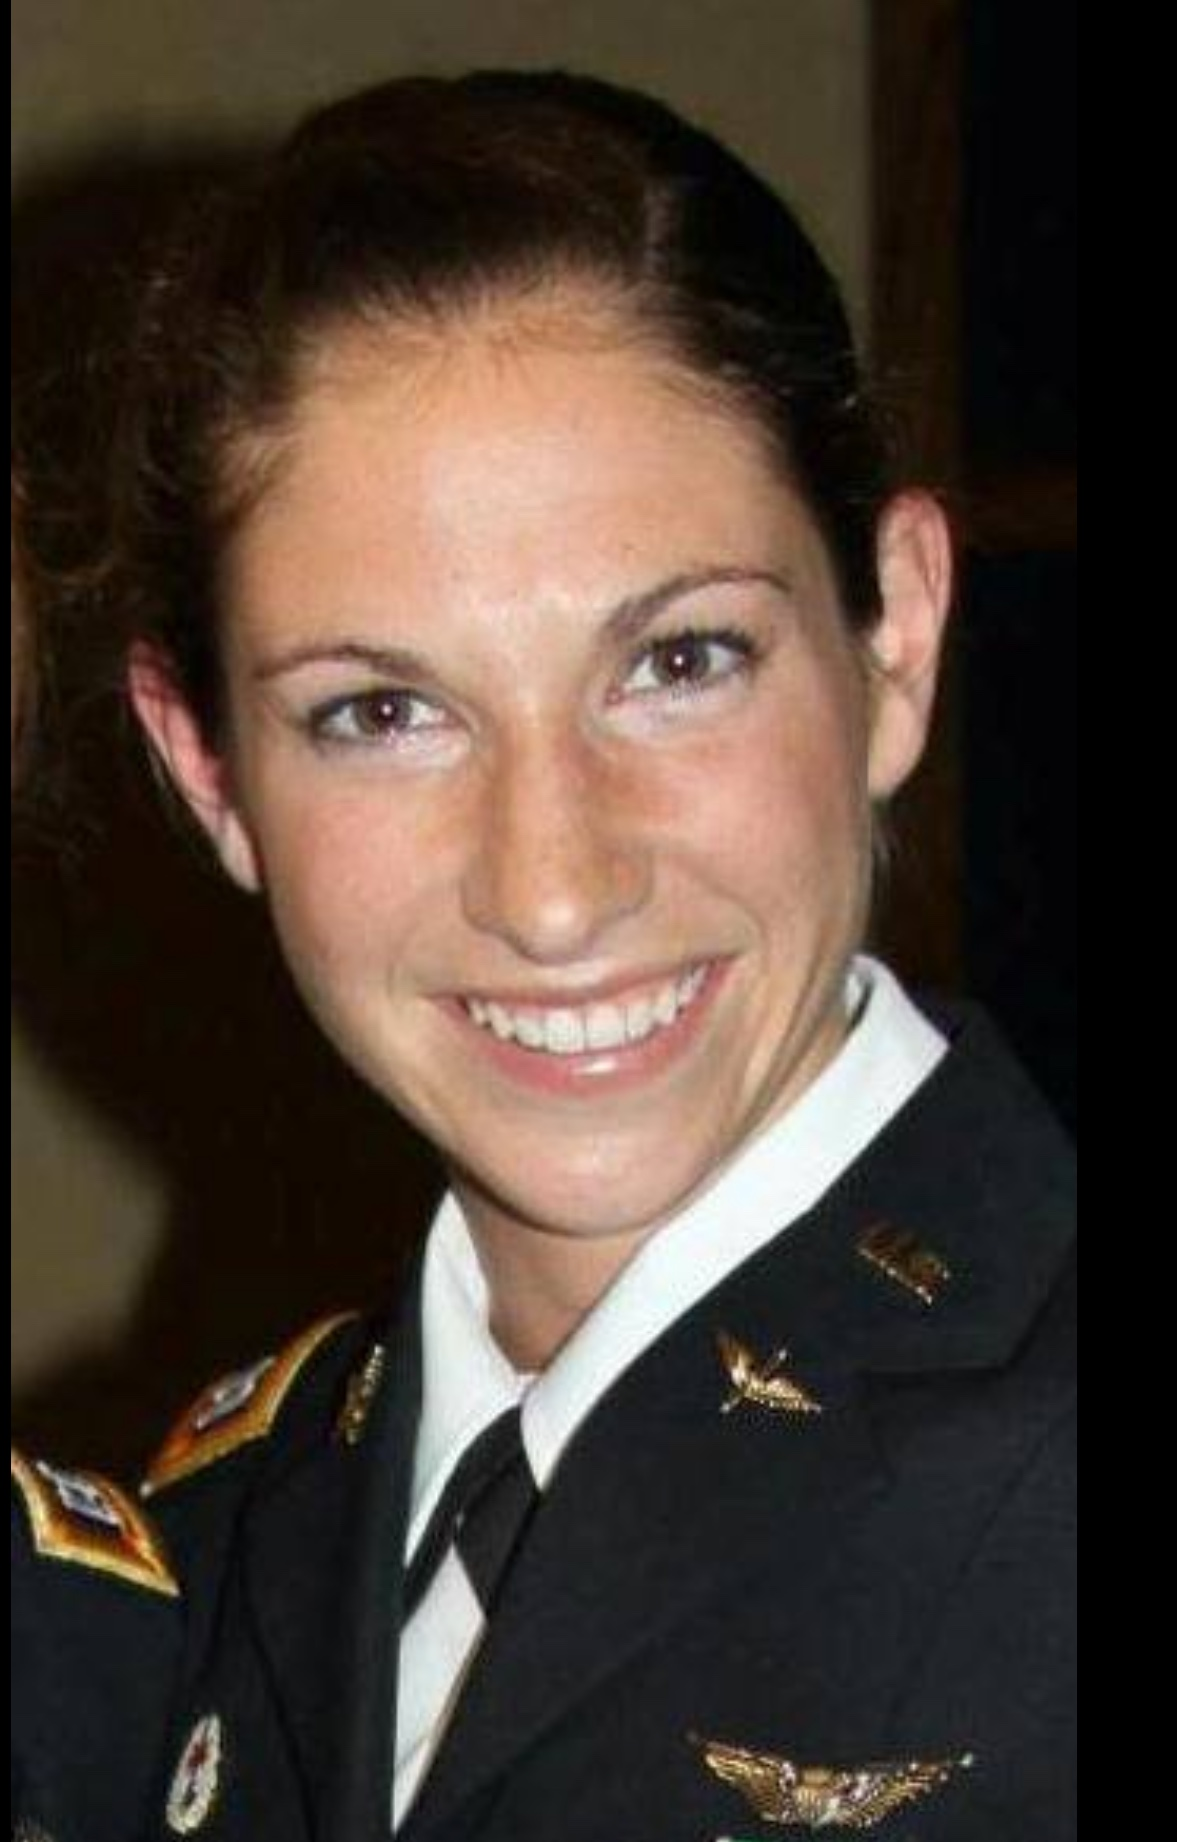 CPT Sara Knutson Cullen, US Army